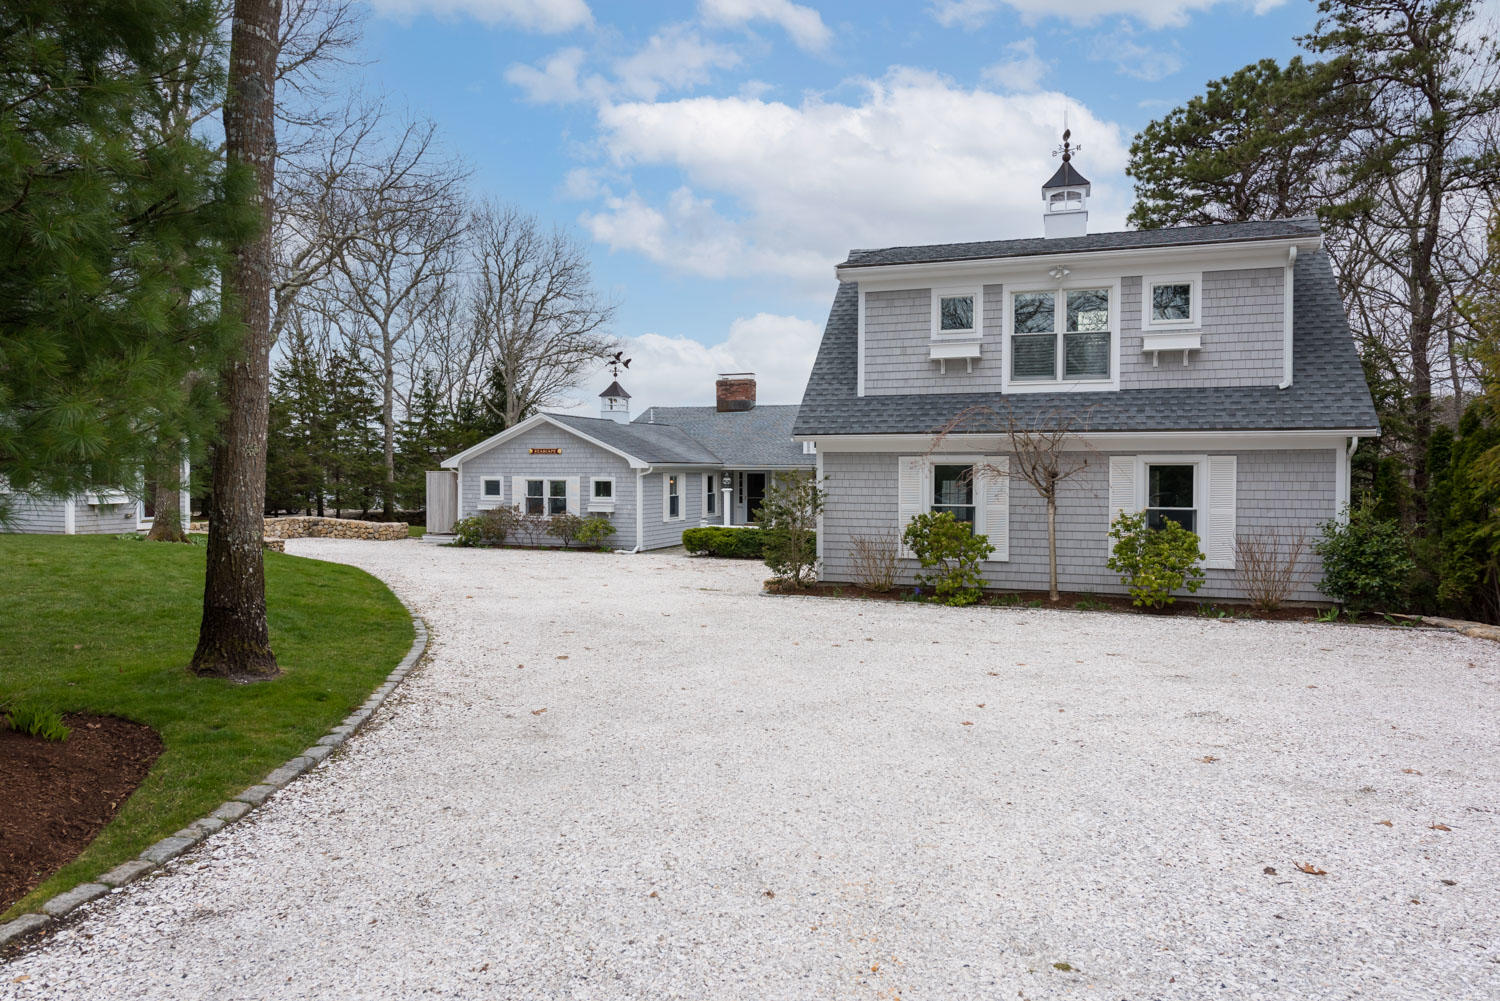 162 Clamshell Cove Road, Cotuit MA, 02635 details